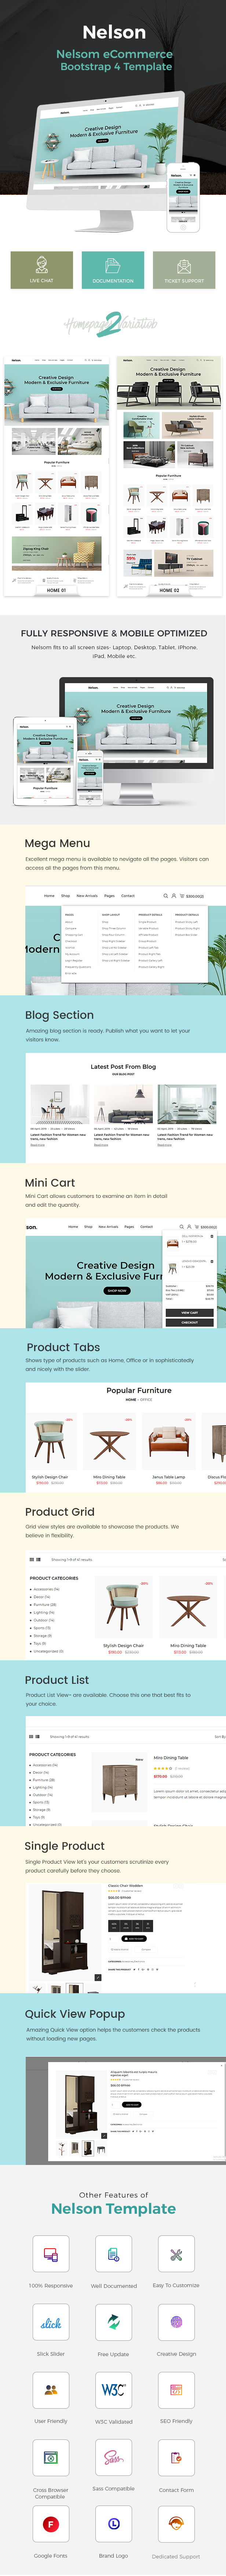 Nelson - Furniture eCommerce Bootstrap 4 Template - 1